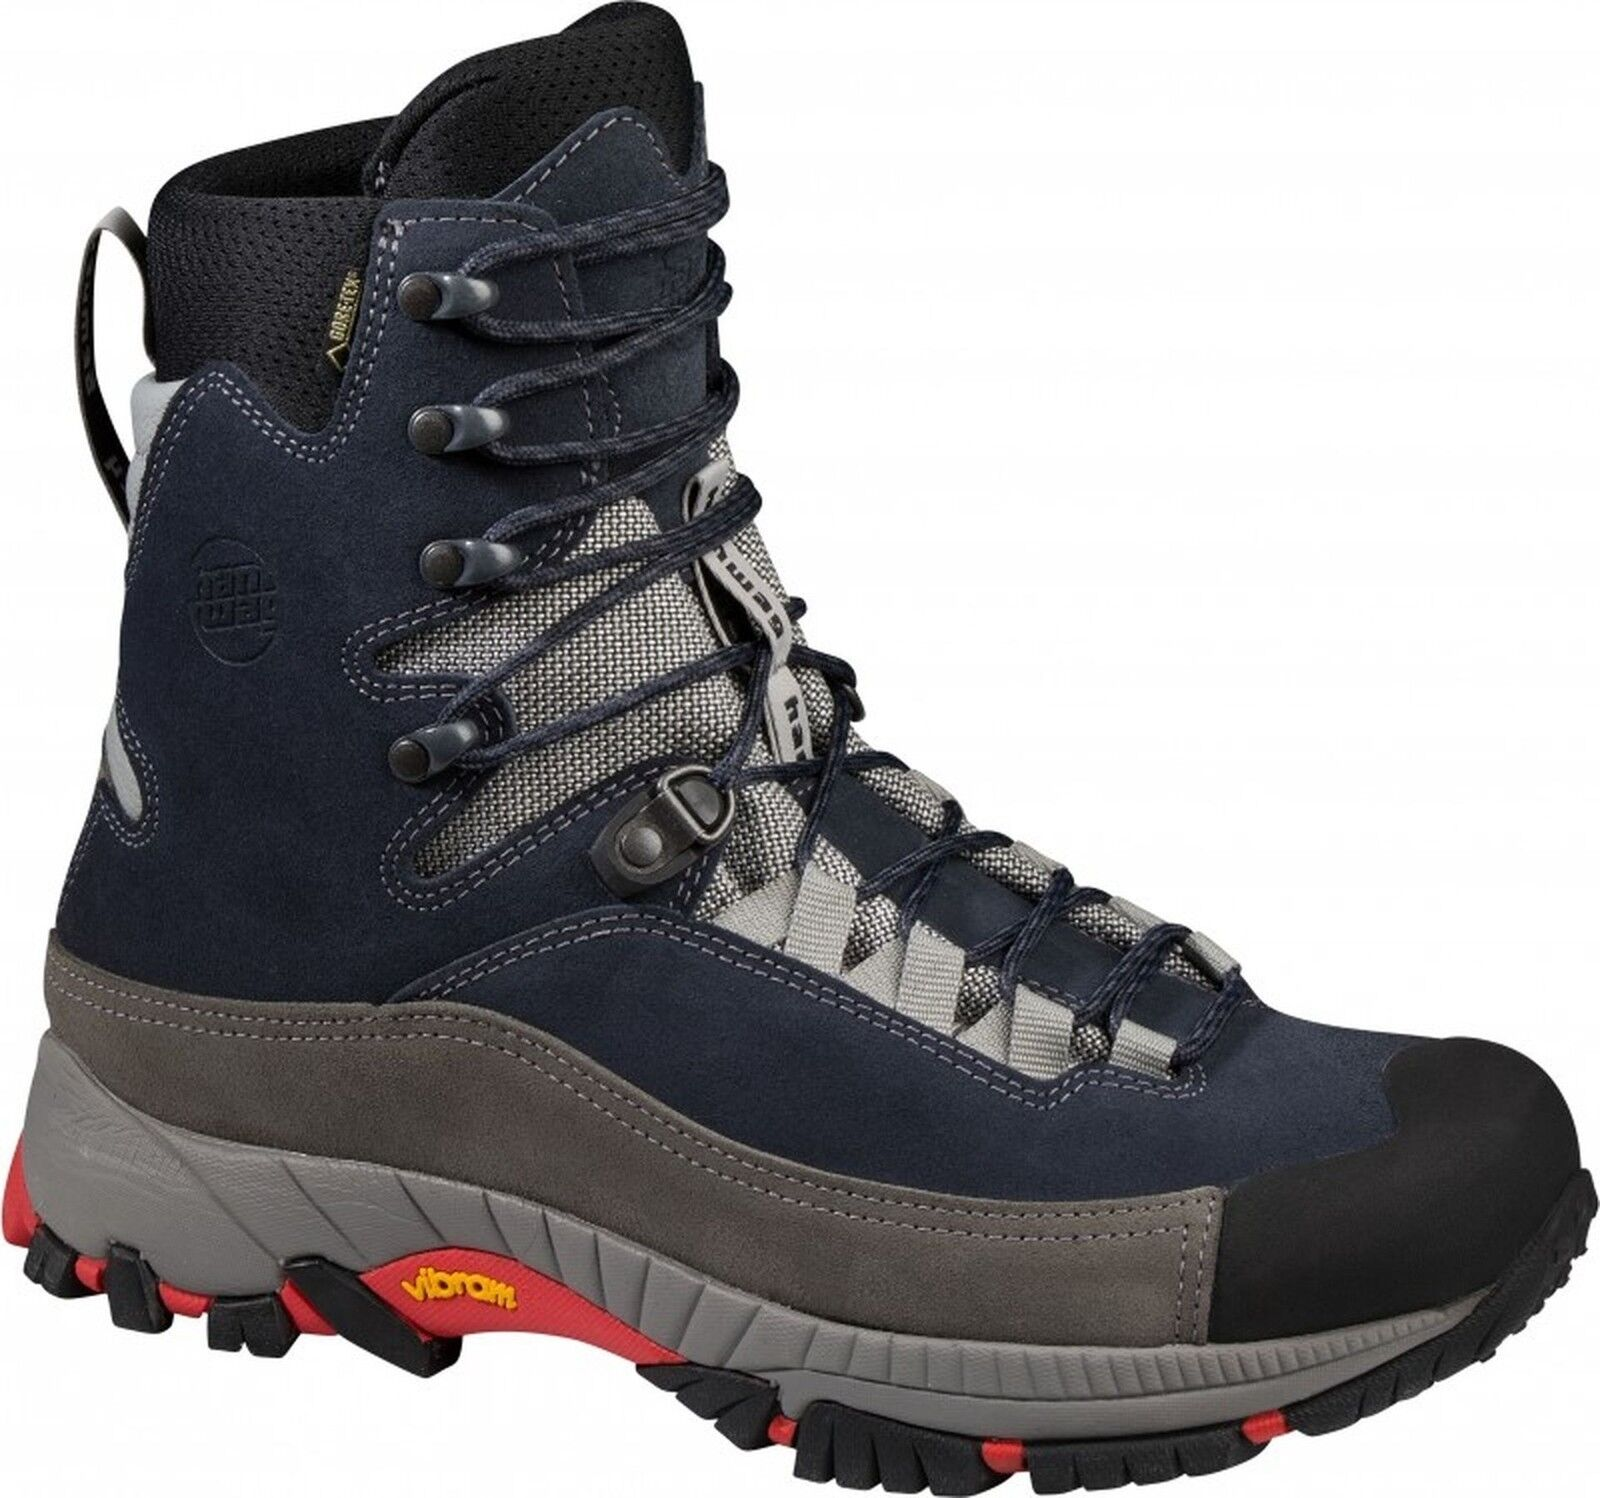 Hanwag Boots Paraglider Sky GTX Size 7,5 - 41,5 Navy bluee